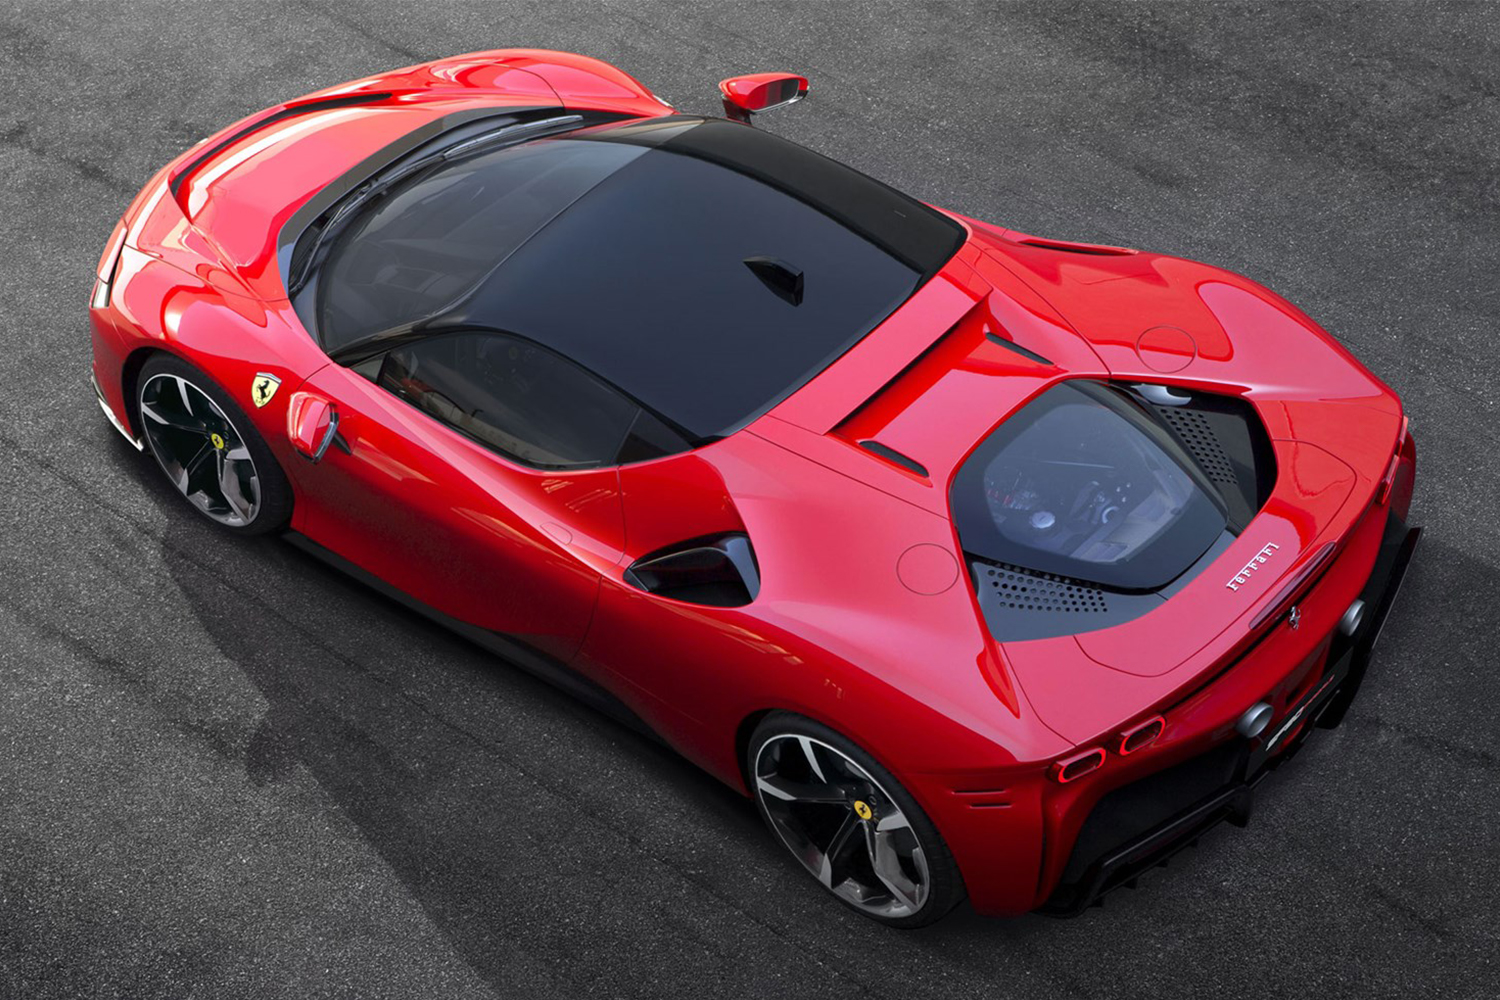 Ferrari's New SF90 Stradale Sports Car